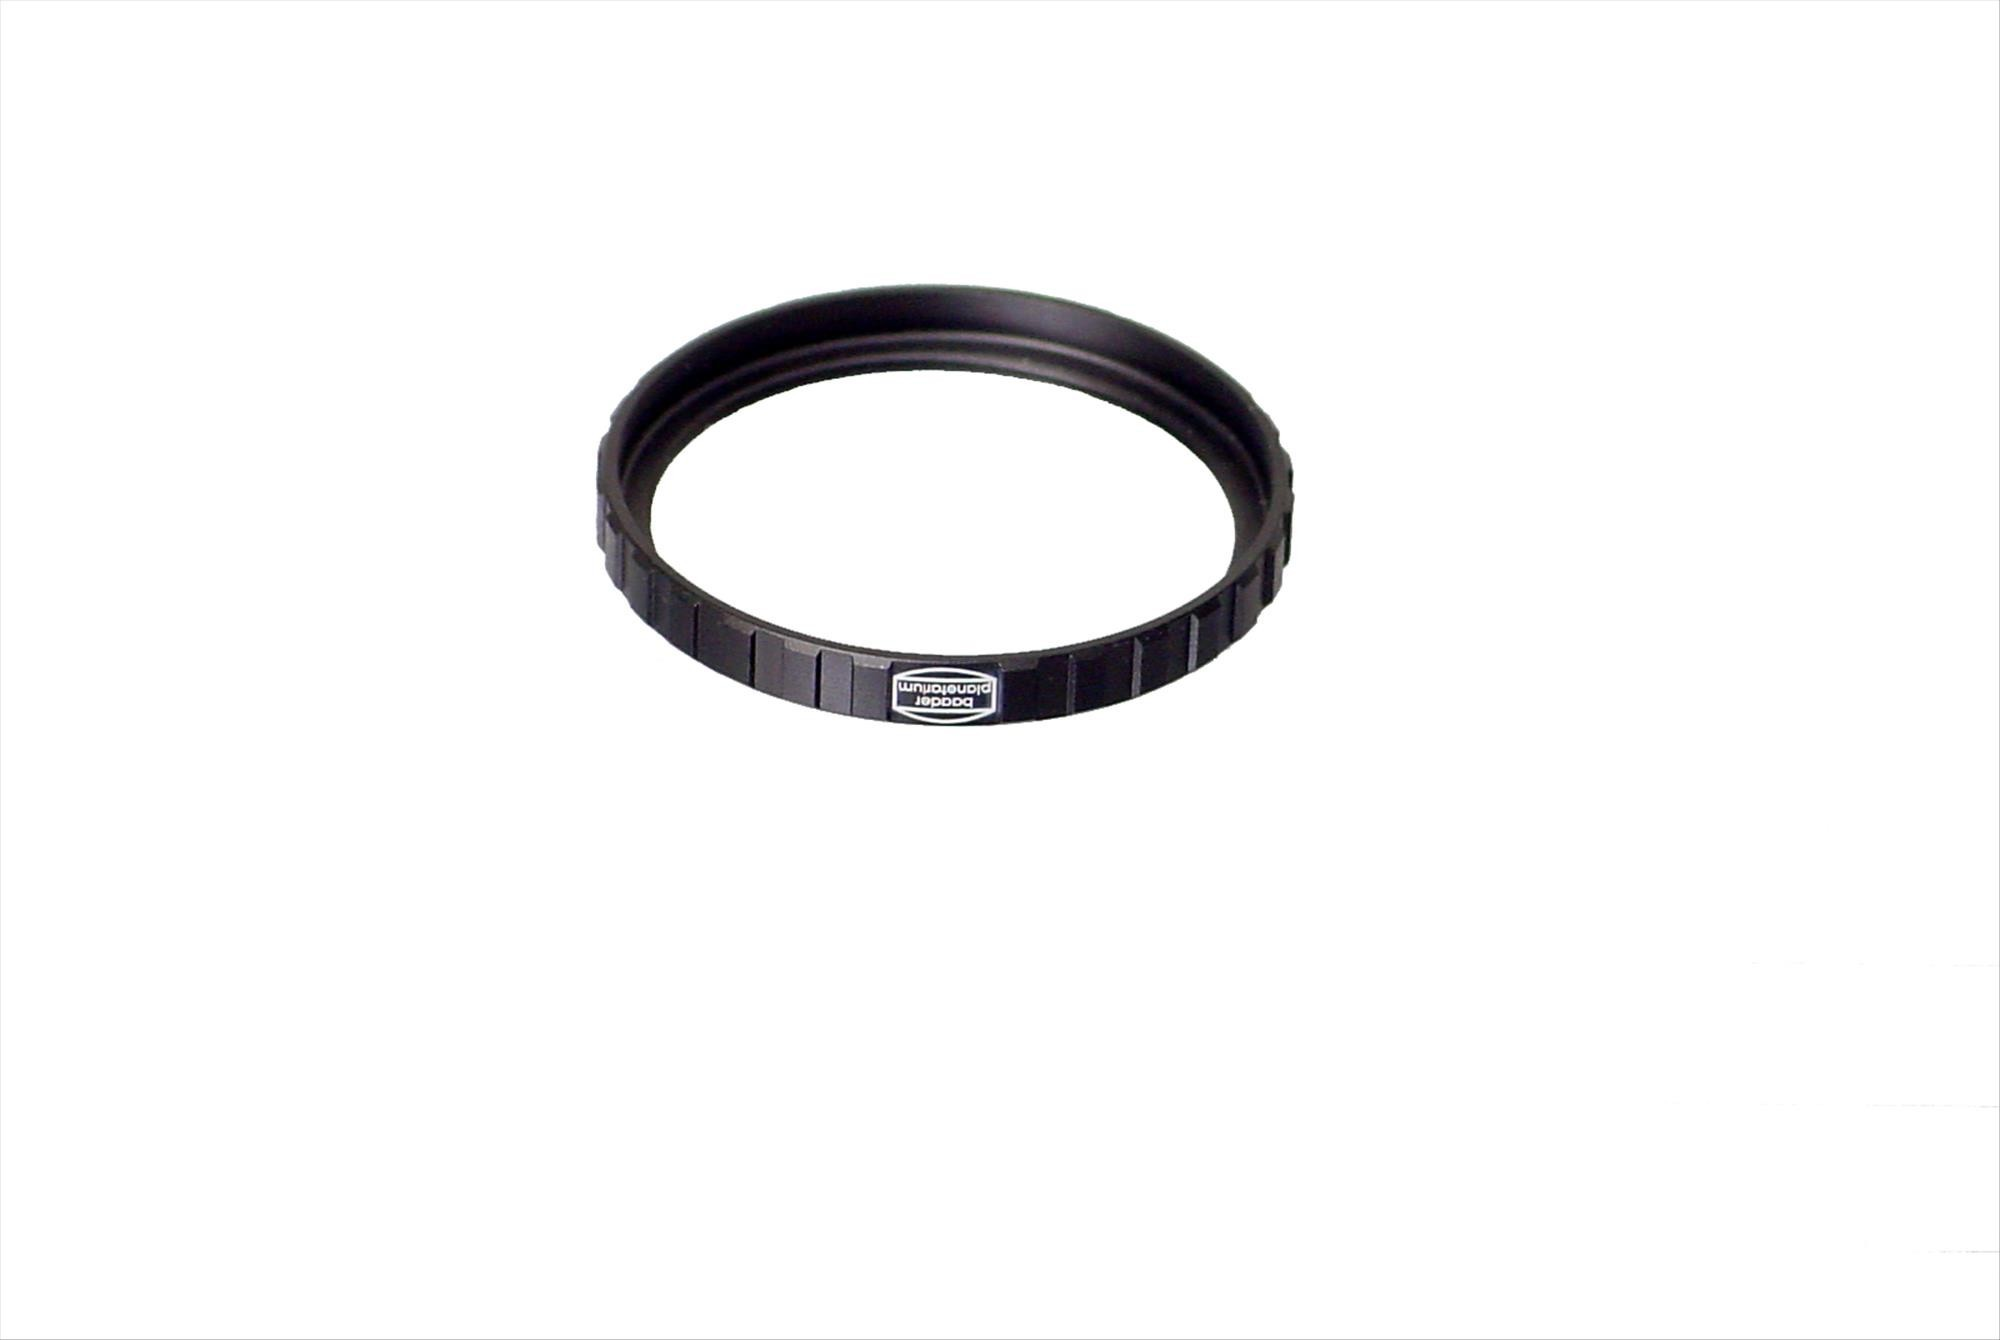 T-2 Locking Ring (2mm optical length), for locking camera orientation